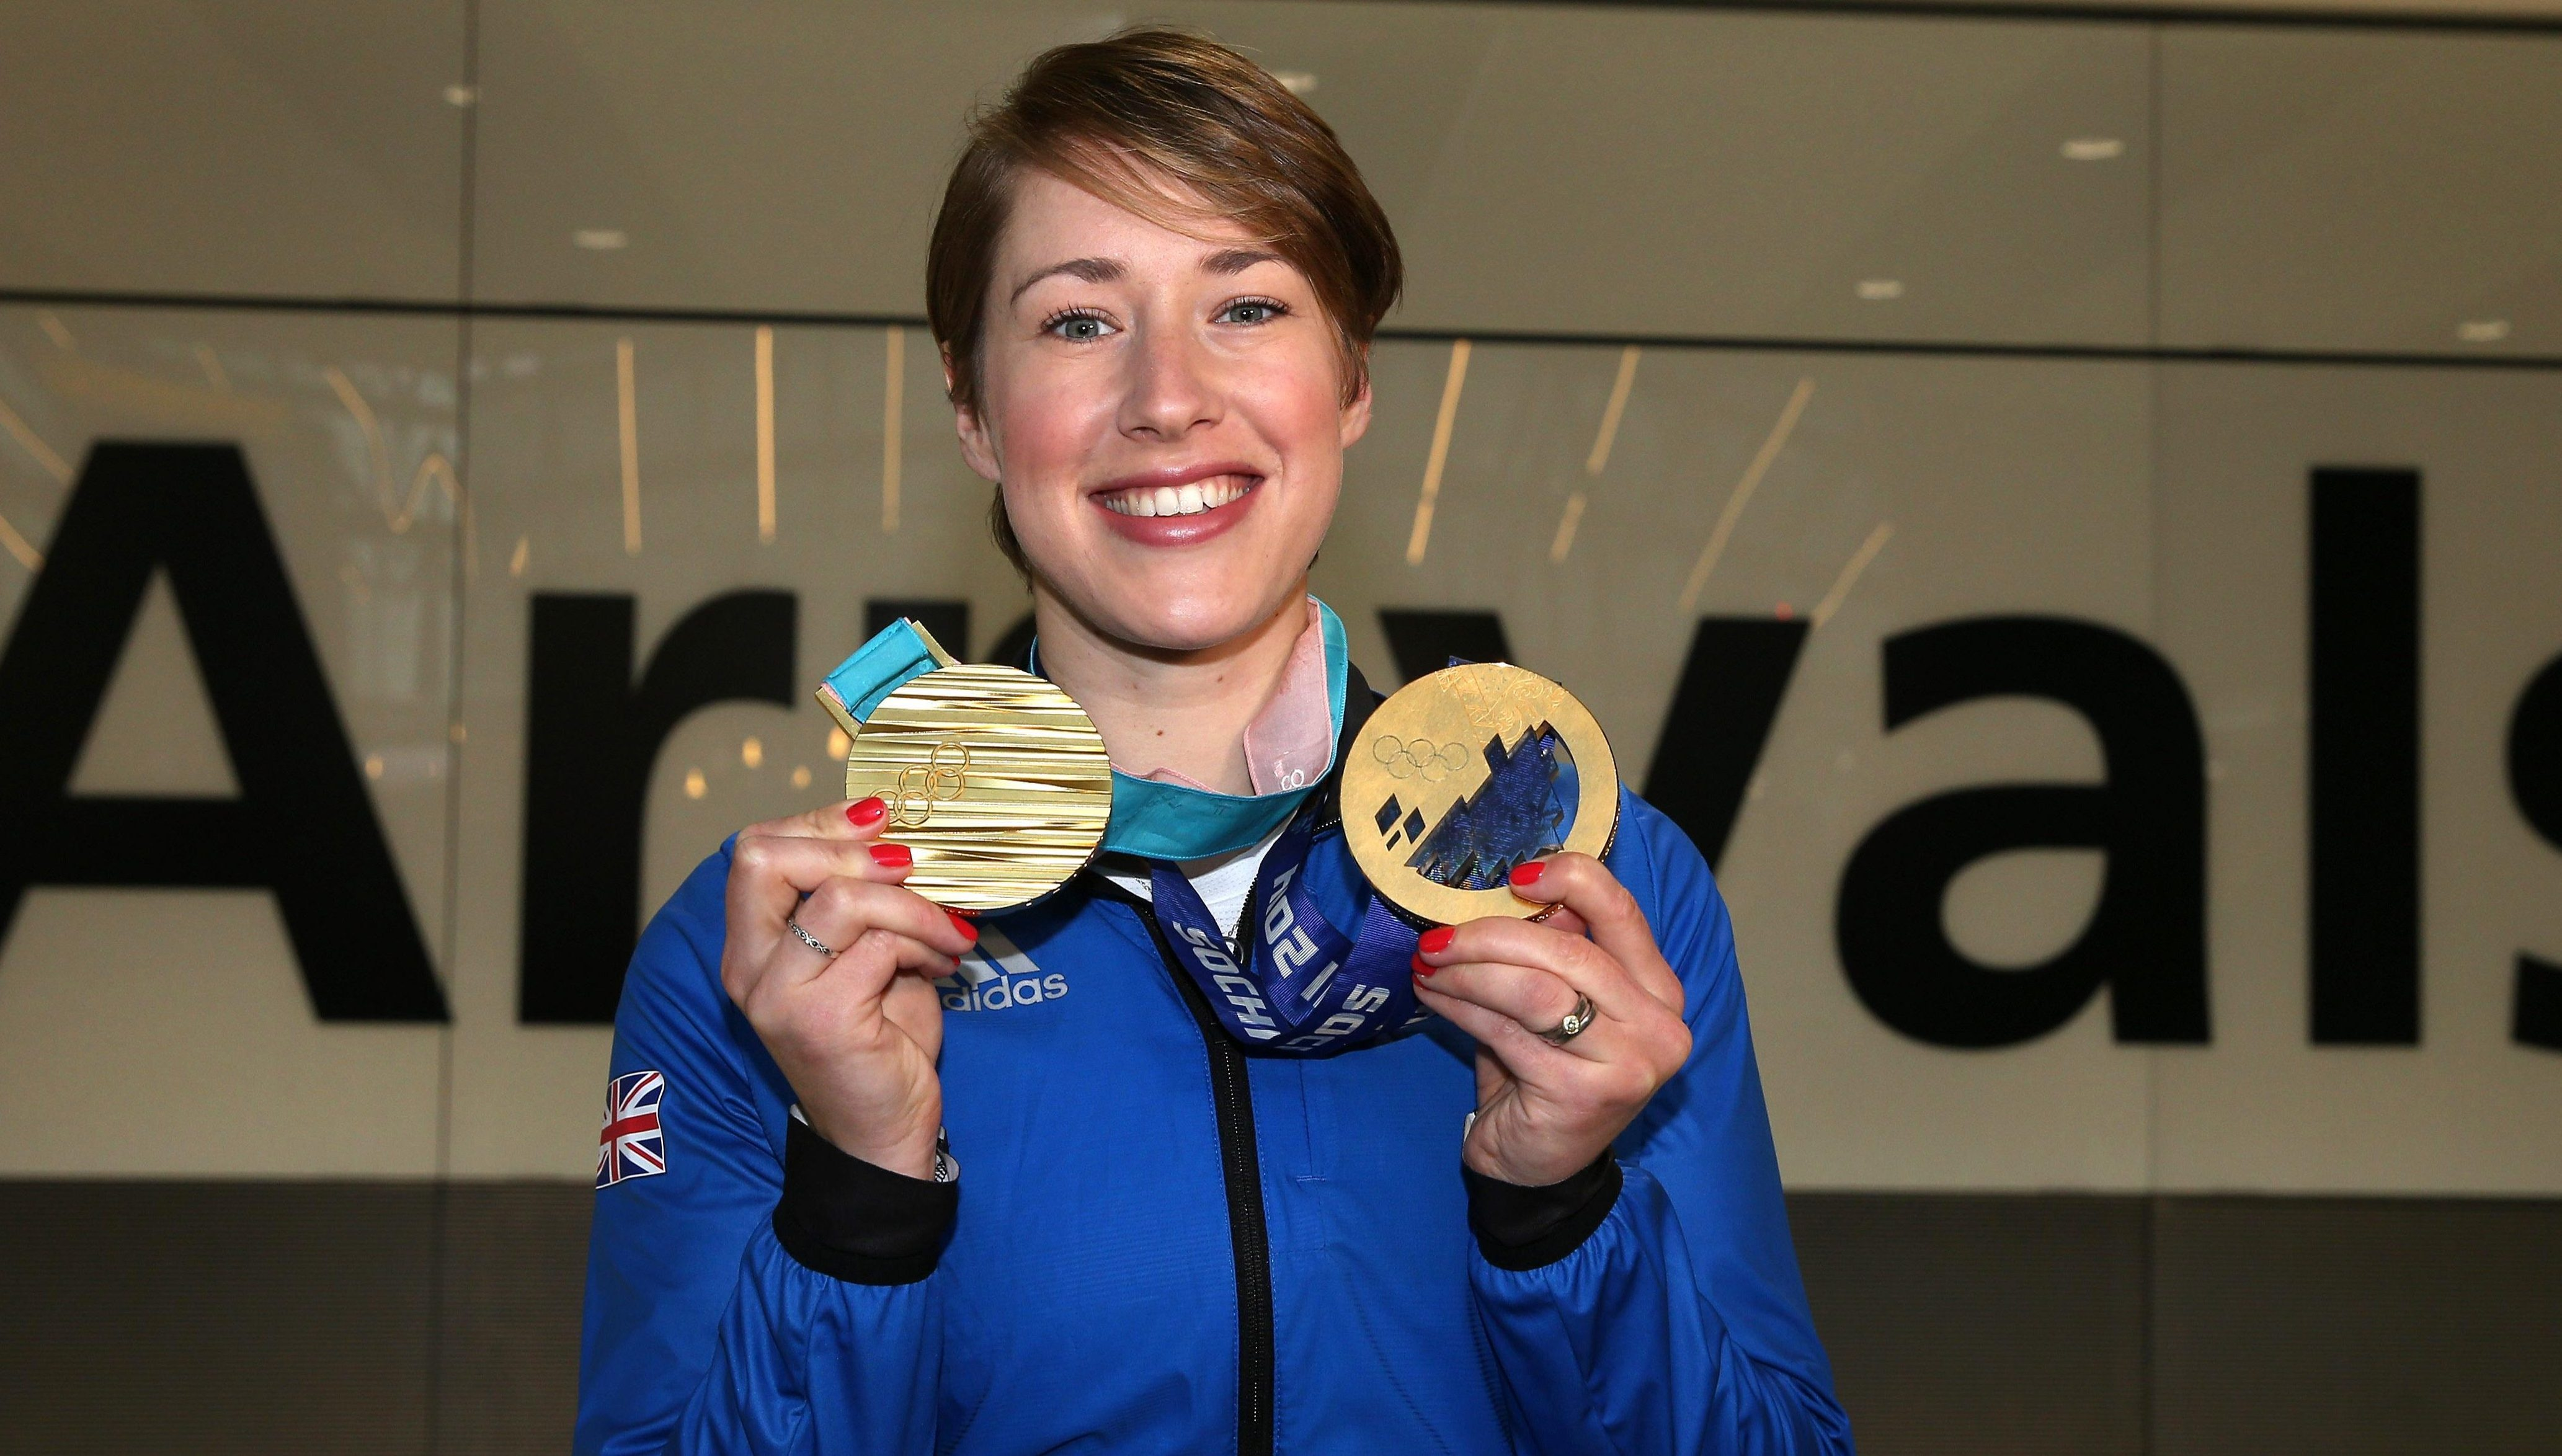 Lizzy Yarnold of Great Britain poses with her Skeleton gold medals